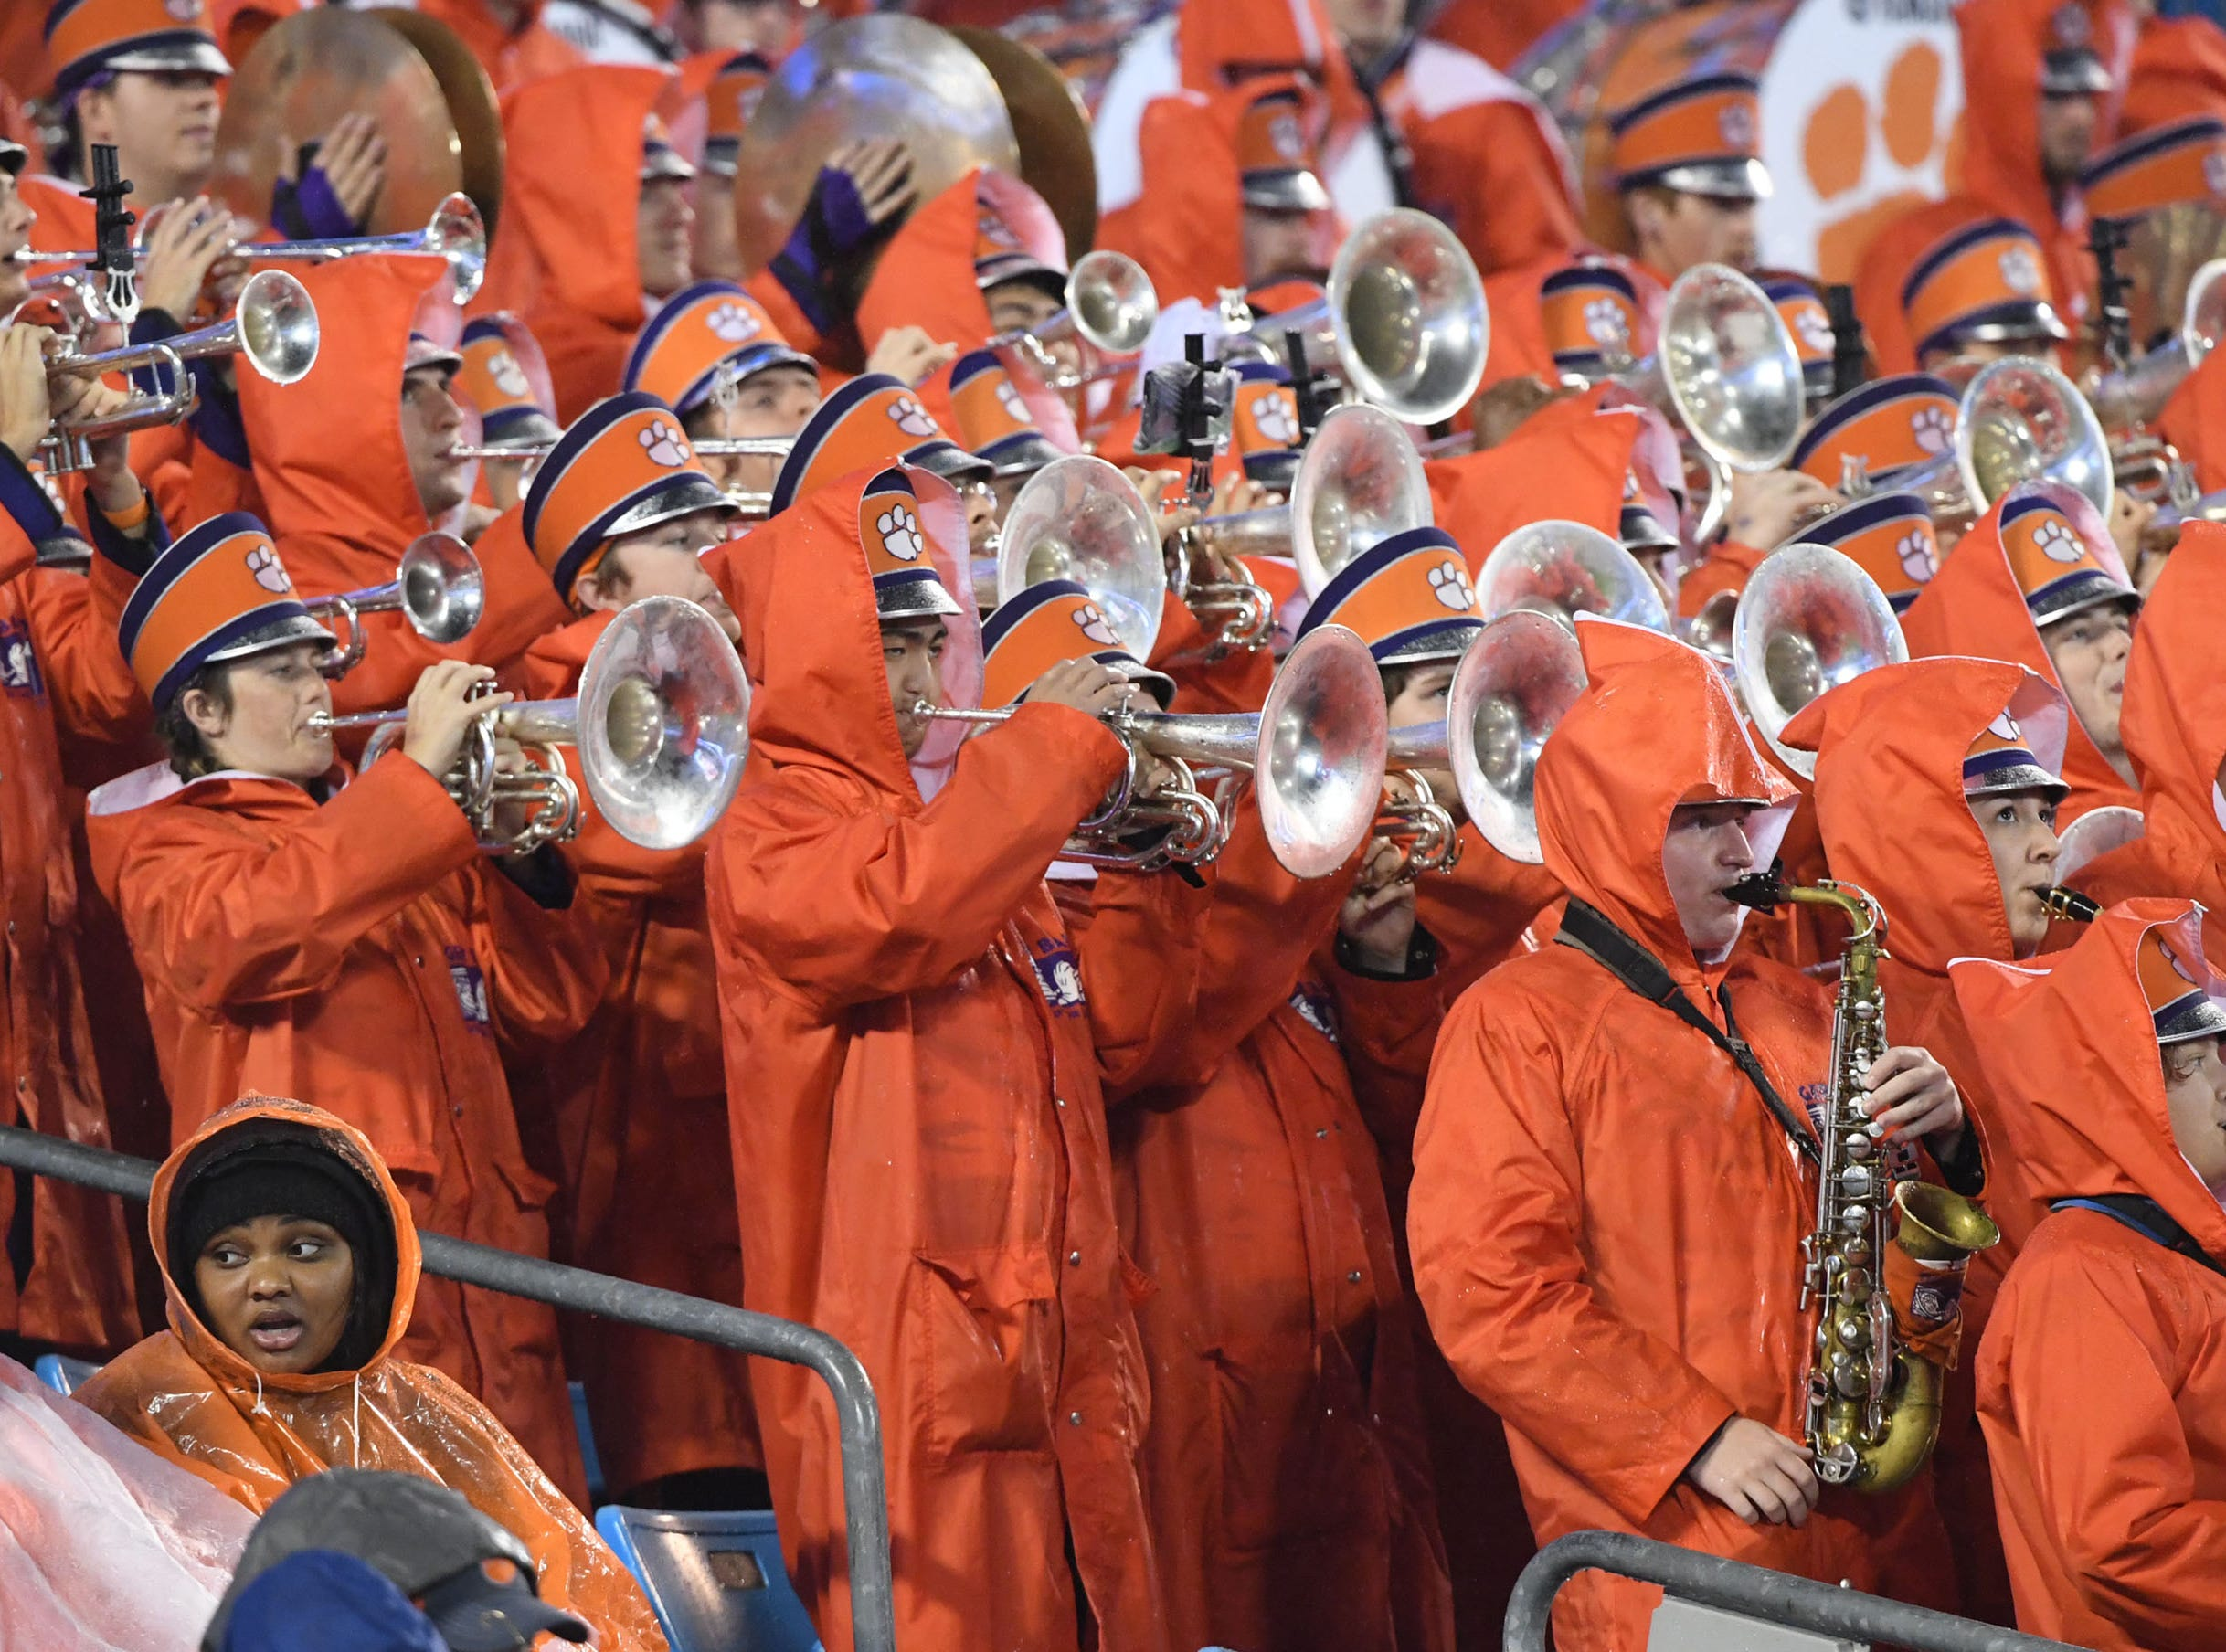 Clemson band plays during the first quarter of the Dr. Pepper ACC football championship at Bank of America Stadium in Charlotte, N.C. on Saturday, December 1, 2018.